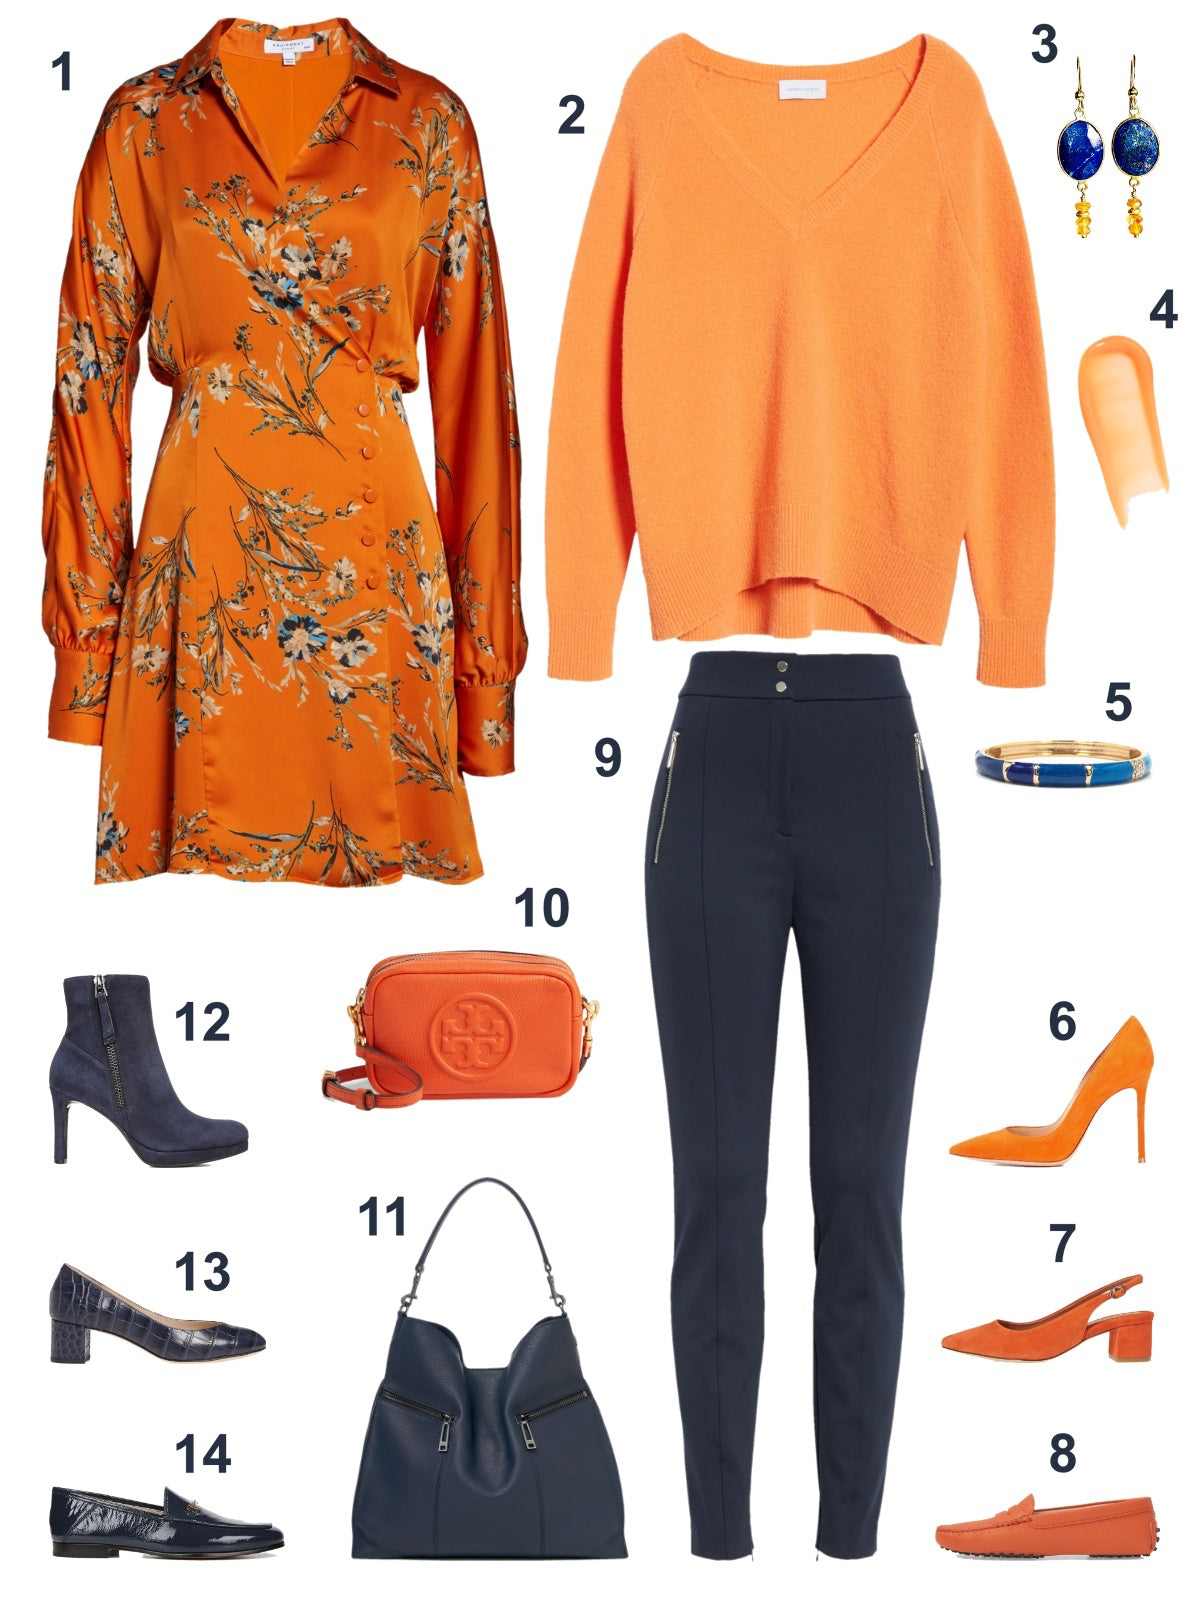 Color Craze: Persimmon Orange and Majolica Blue - Style Board - The Color Lab Blog